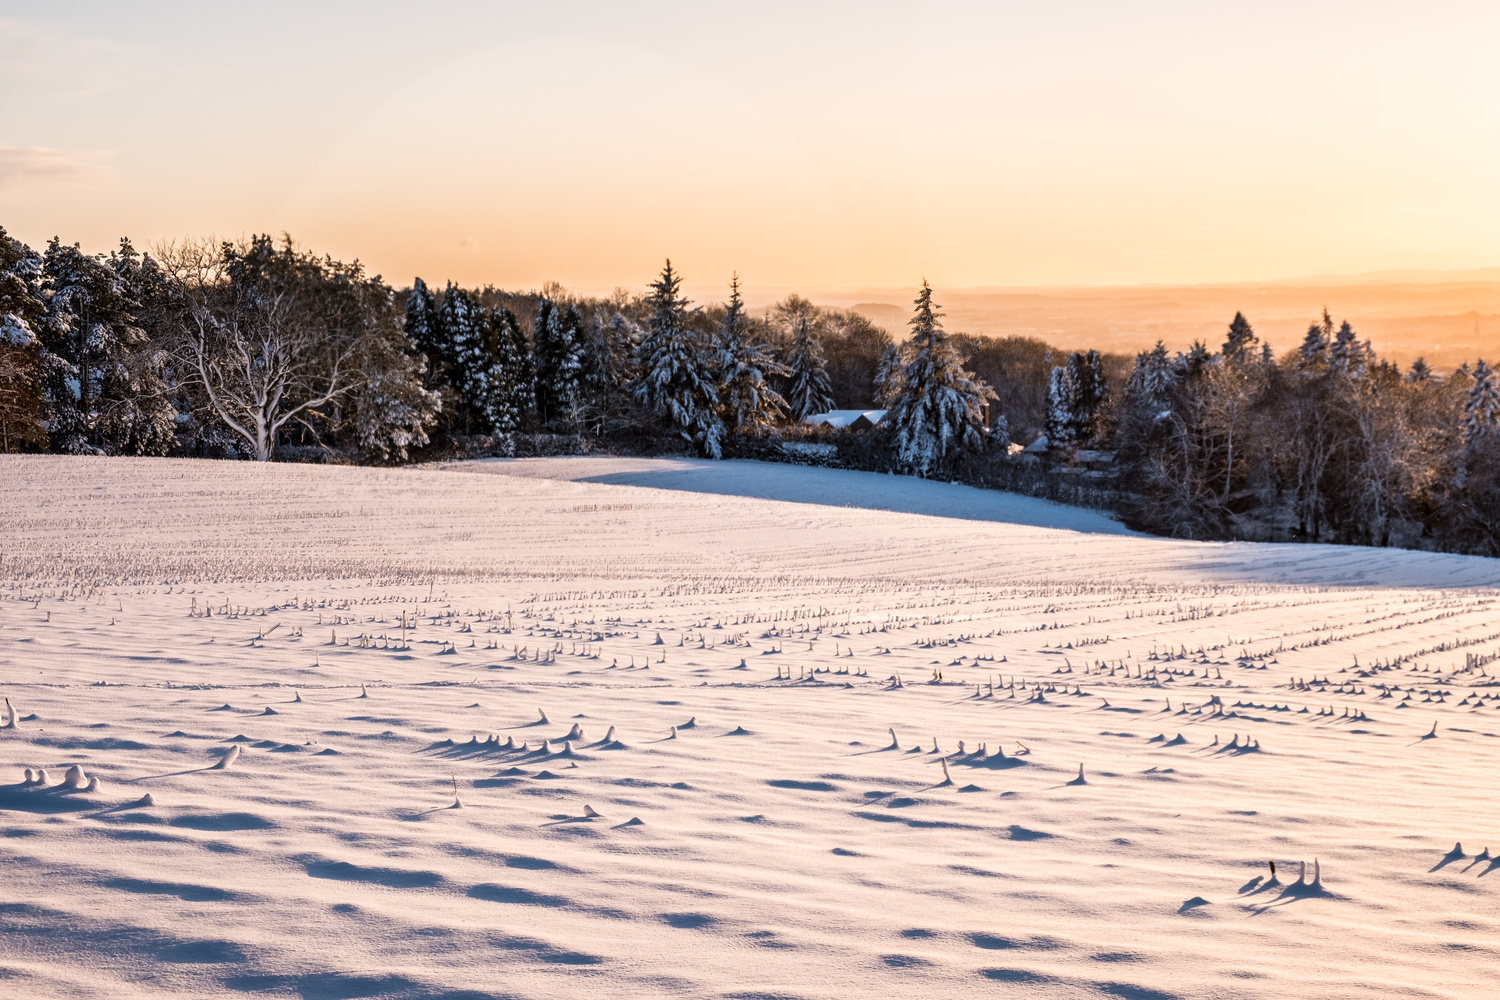 Snowy Landscape by andrew audley